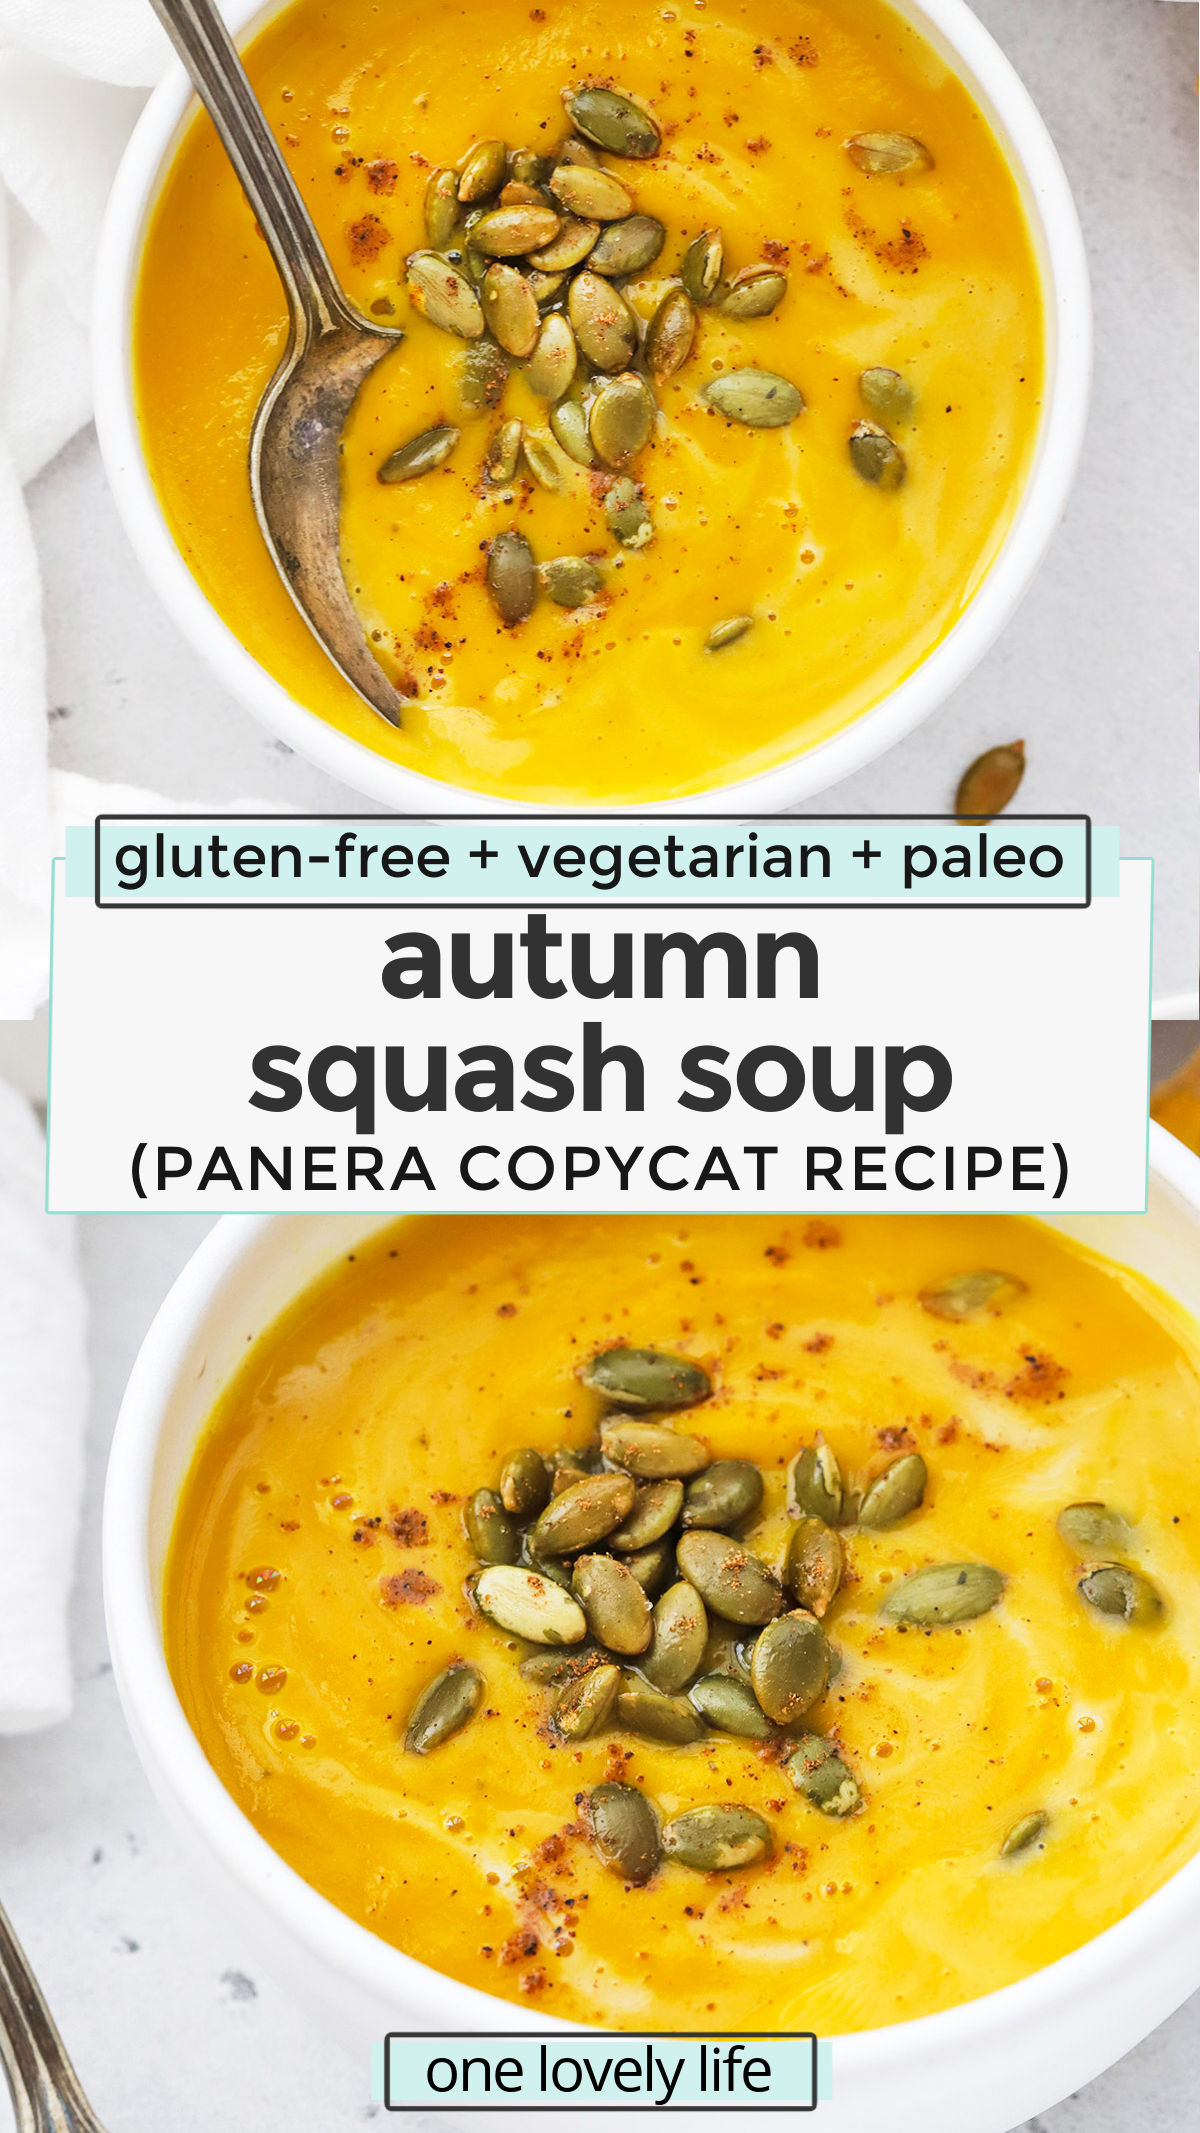 Autumn Squash Soup - We recreated the Panera squash soup recipe so you can make it at home! This creamy squash soup has the perfect blend of spices and is sure to warm you up on a chilly day. (Paleo, Vegan-Friendly) // Panera Autumn Squash Soup recipe // fall squash soup recipe // vegetarian squash soup // #squashsoup #squash #glutenfree #paleo #dairyfree #vegetarian